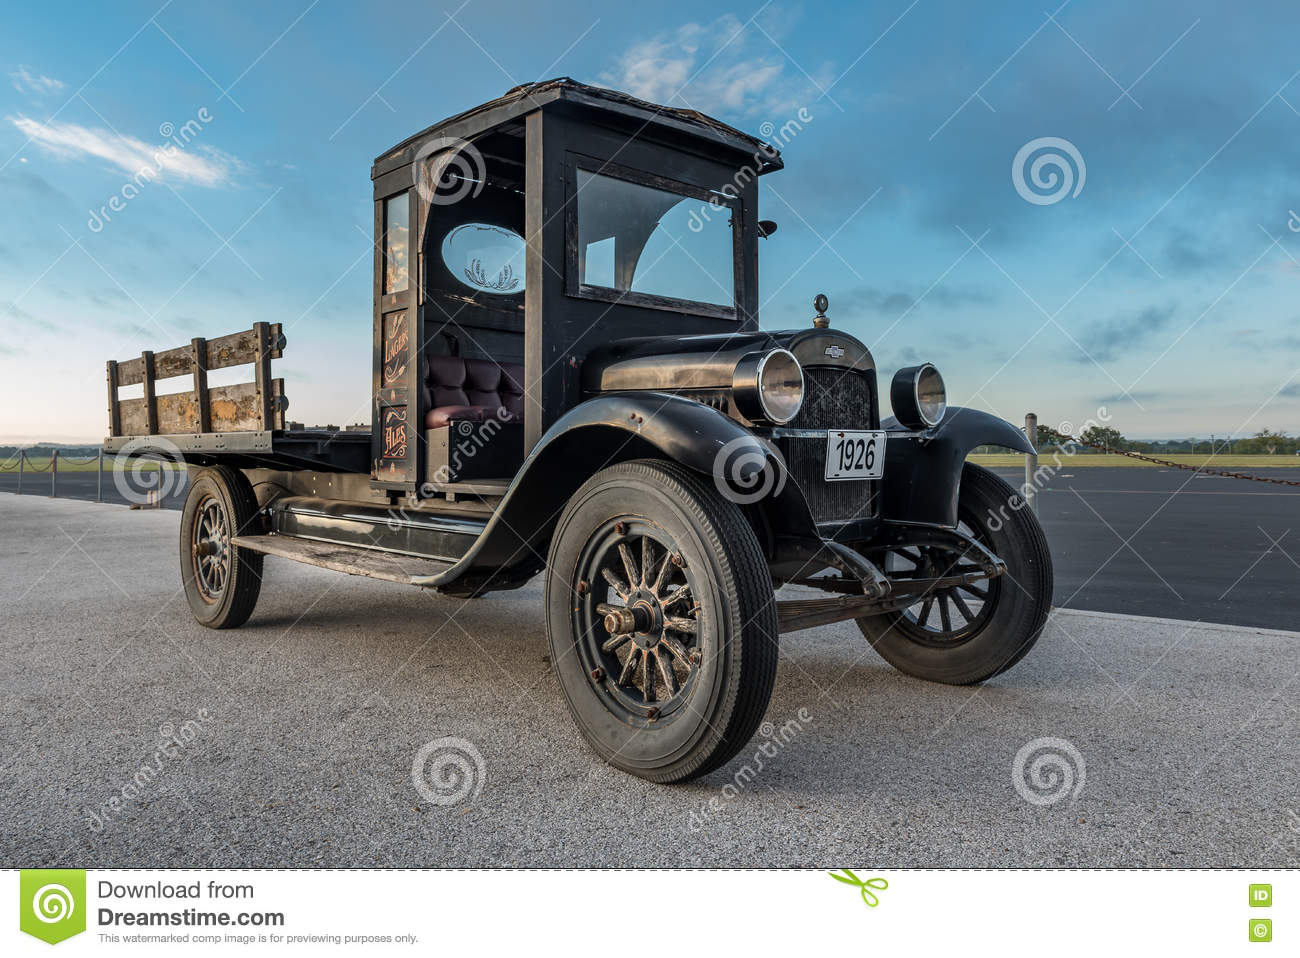 Old Antique Truck with Wood Bed